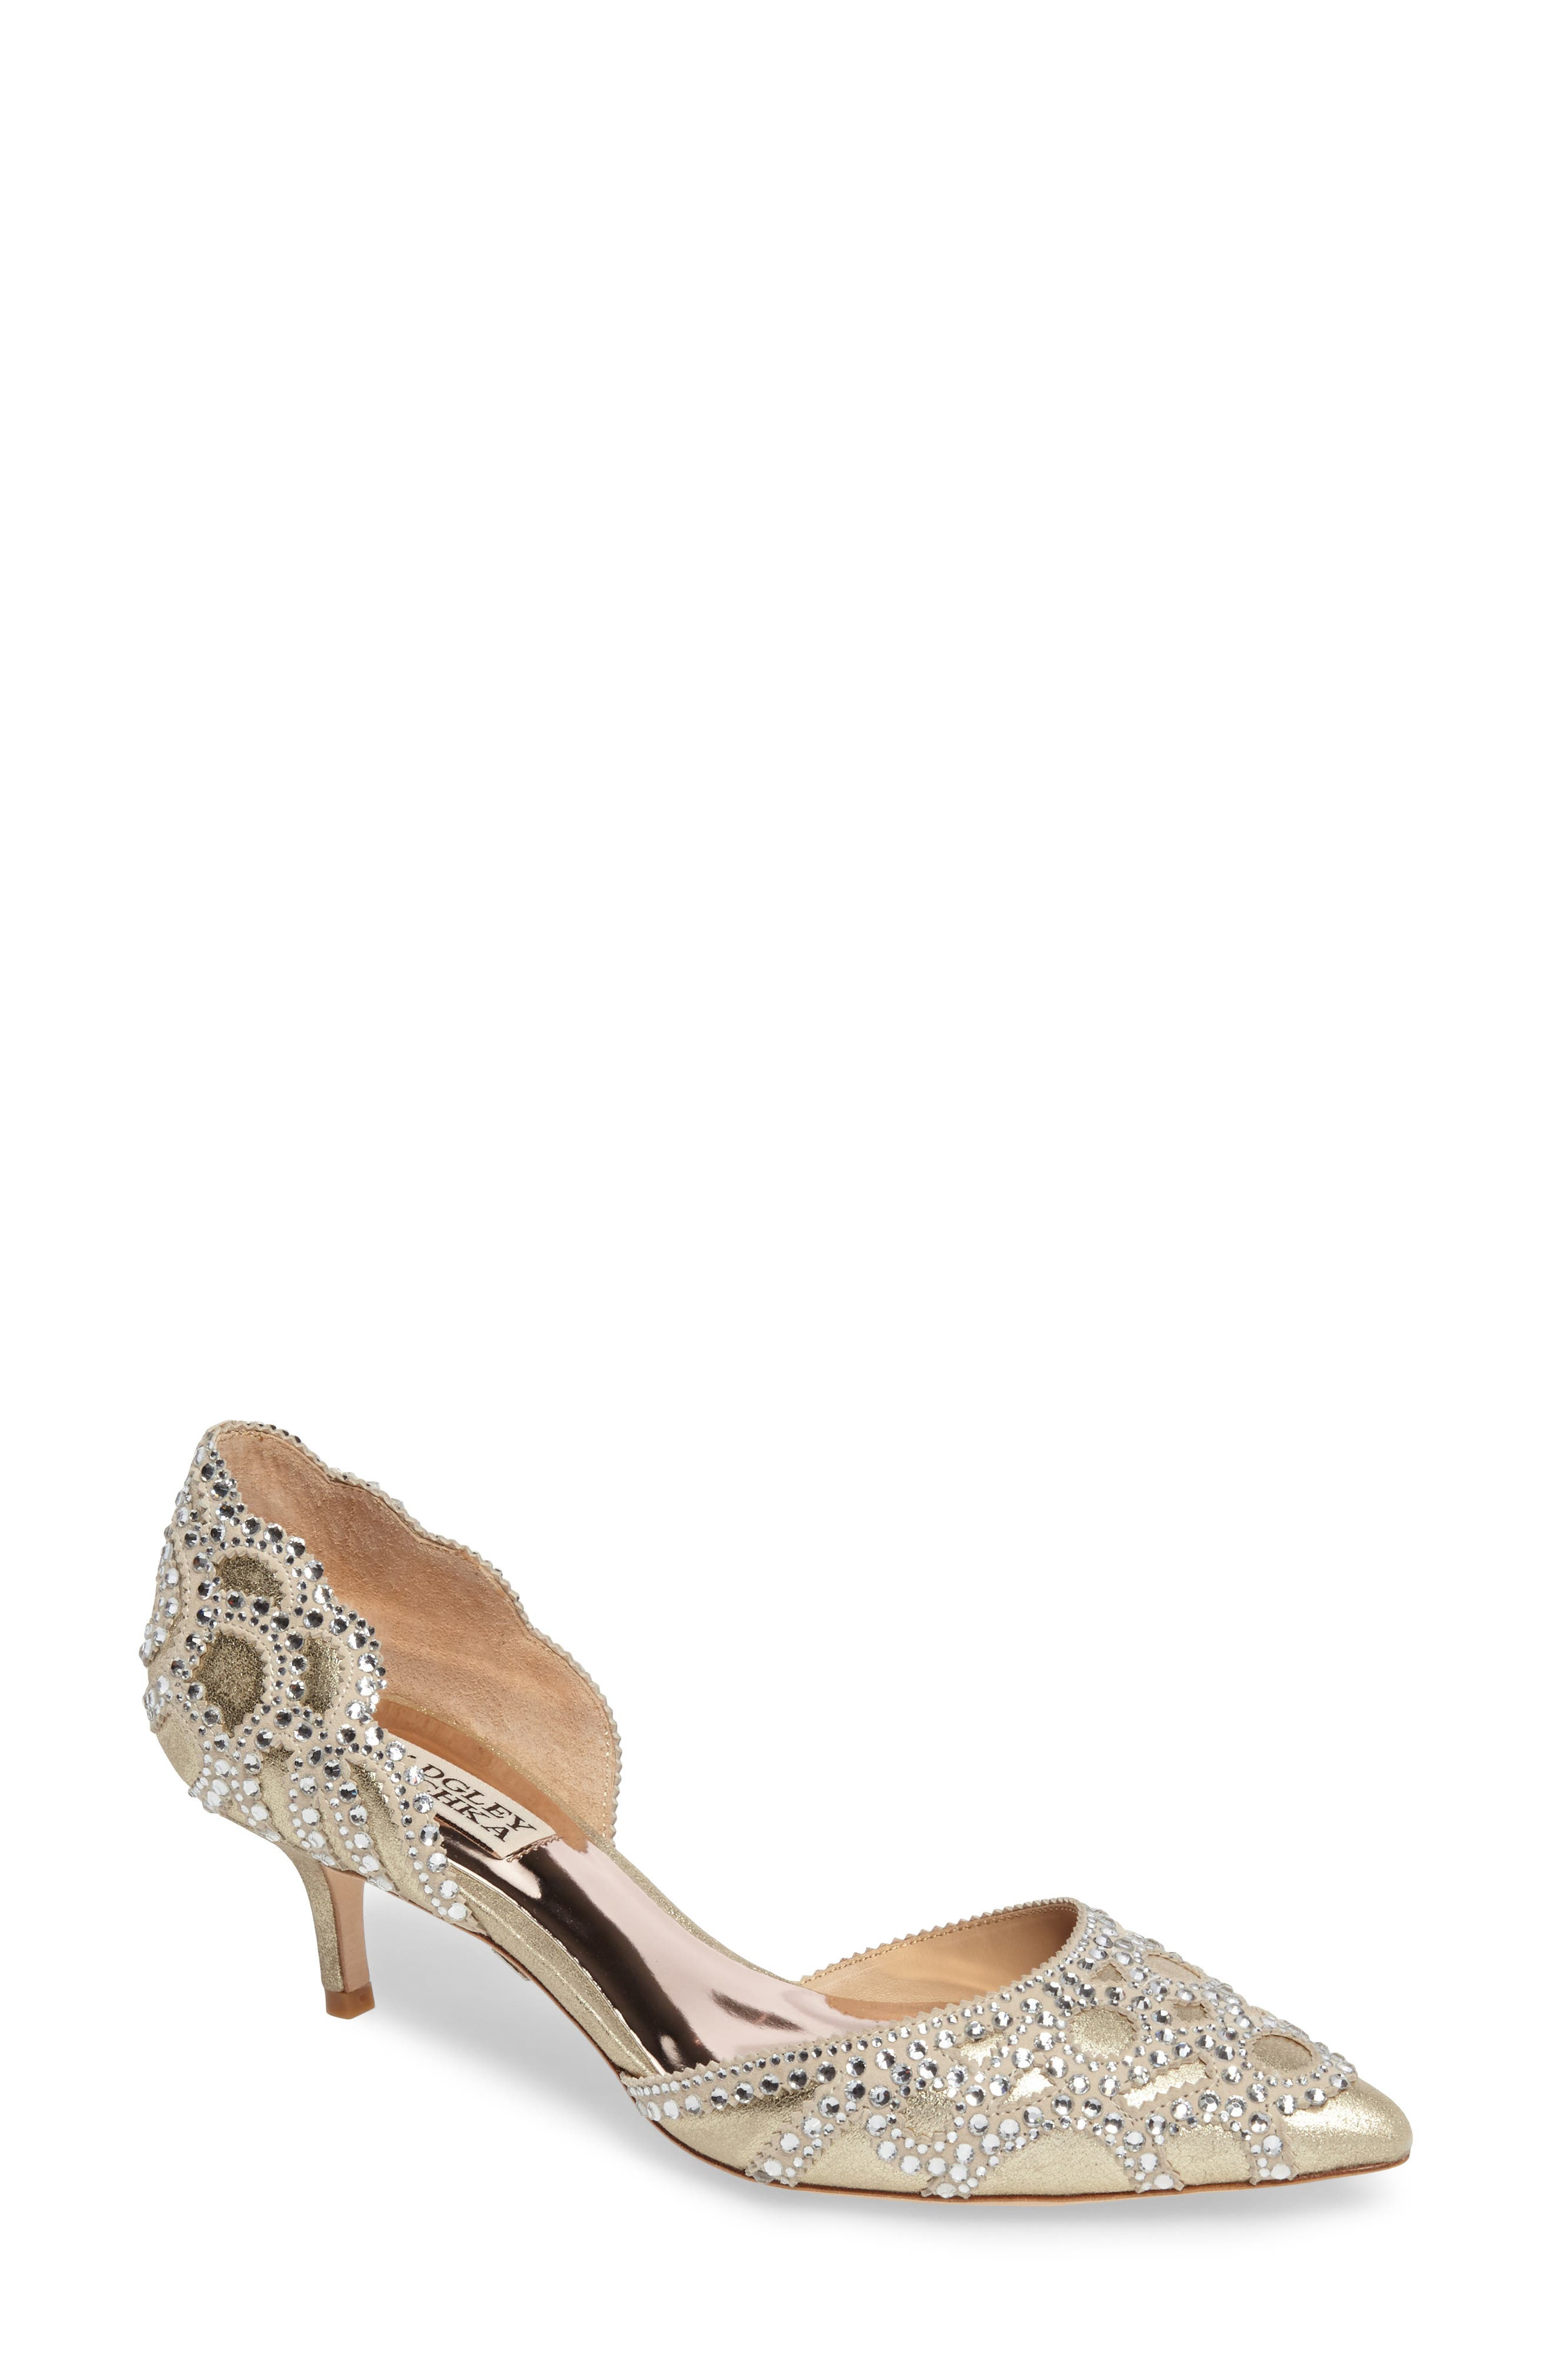 Alternate Image 1 Selected - Badgley Mischka 'Ginny' Embellished d'Orsay Pump (Women)